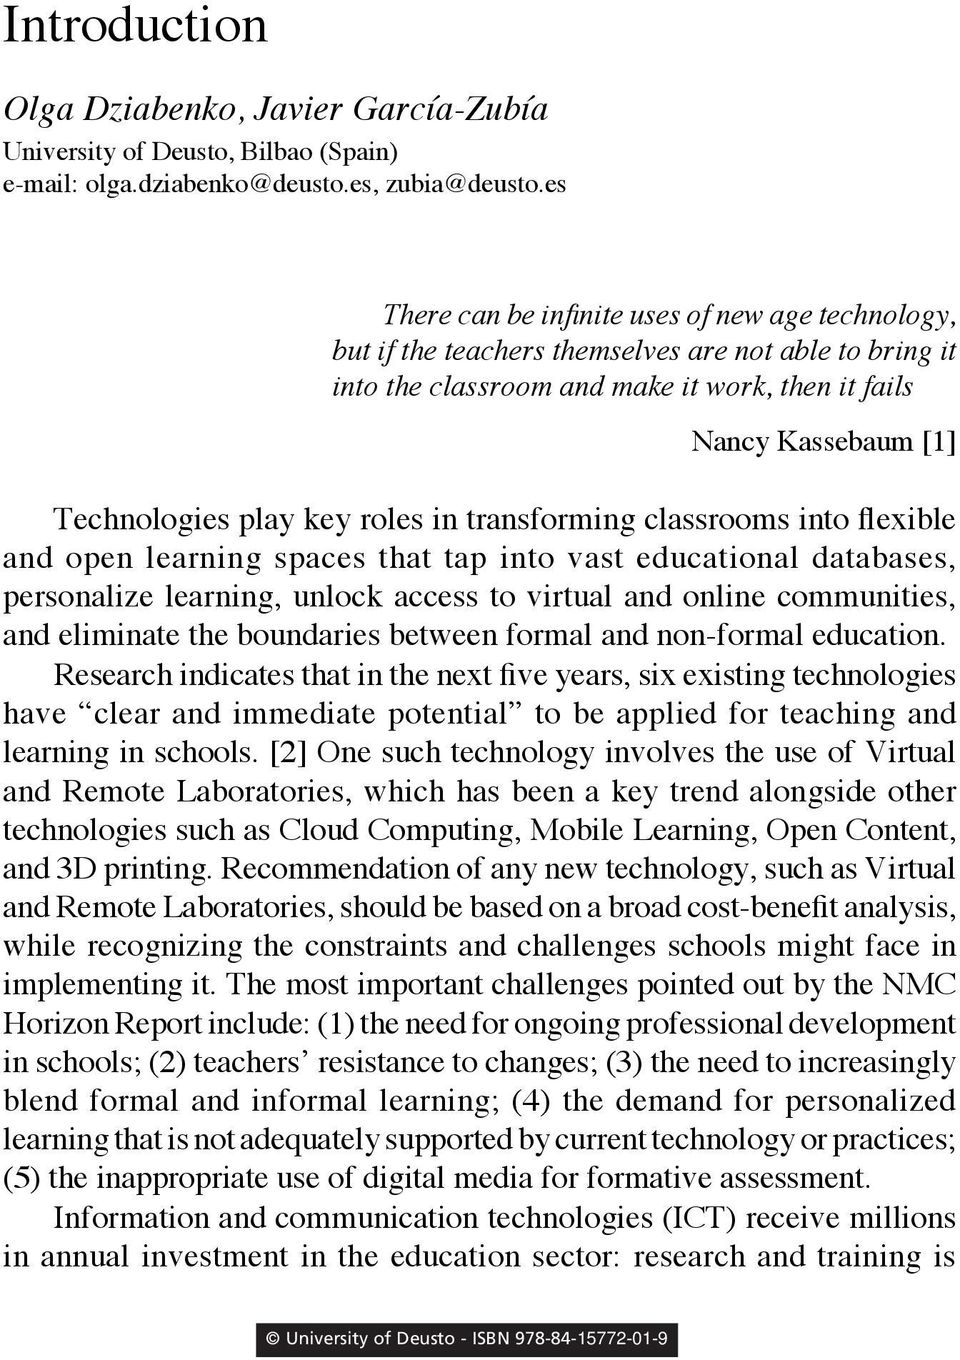 key roles in transforming classrooms into flexible and open learning spaces that tap into vast educational databases, personalize learning, unlock access to virtual and online communities, and